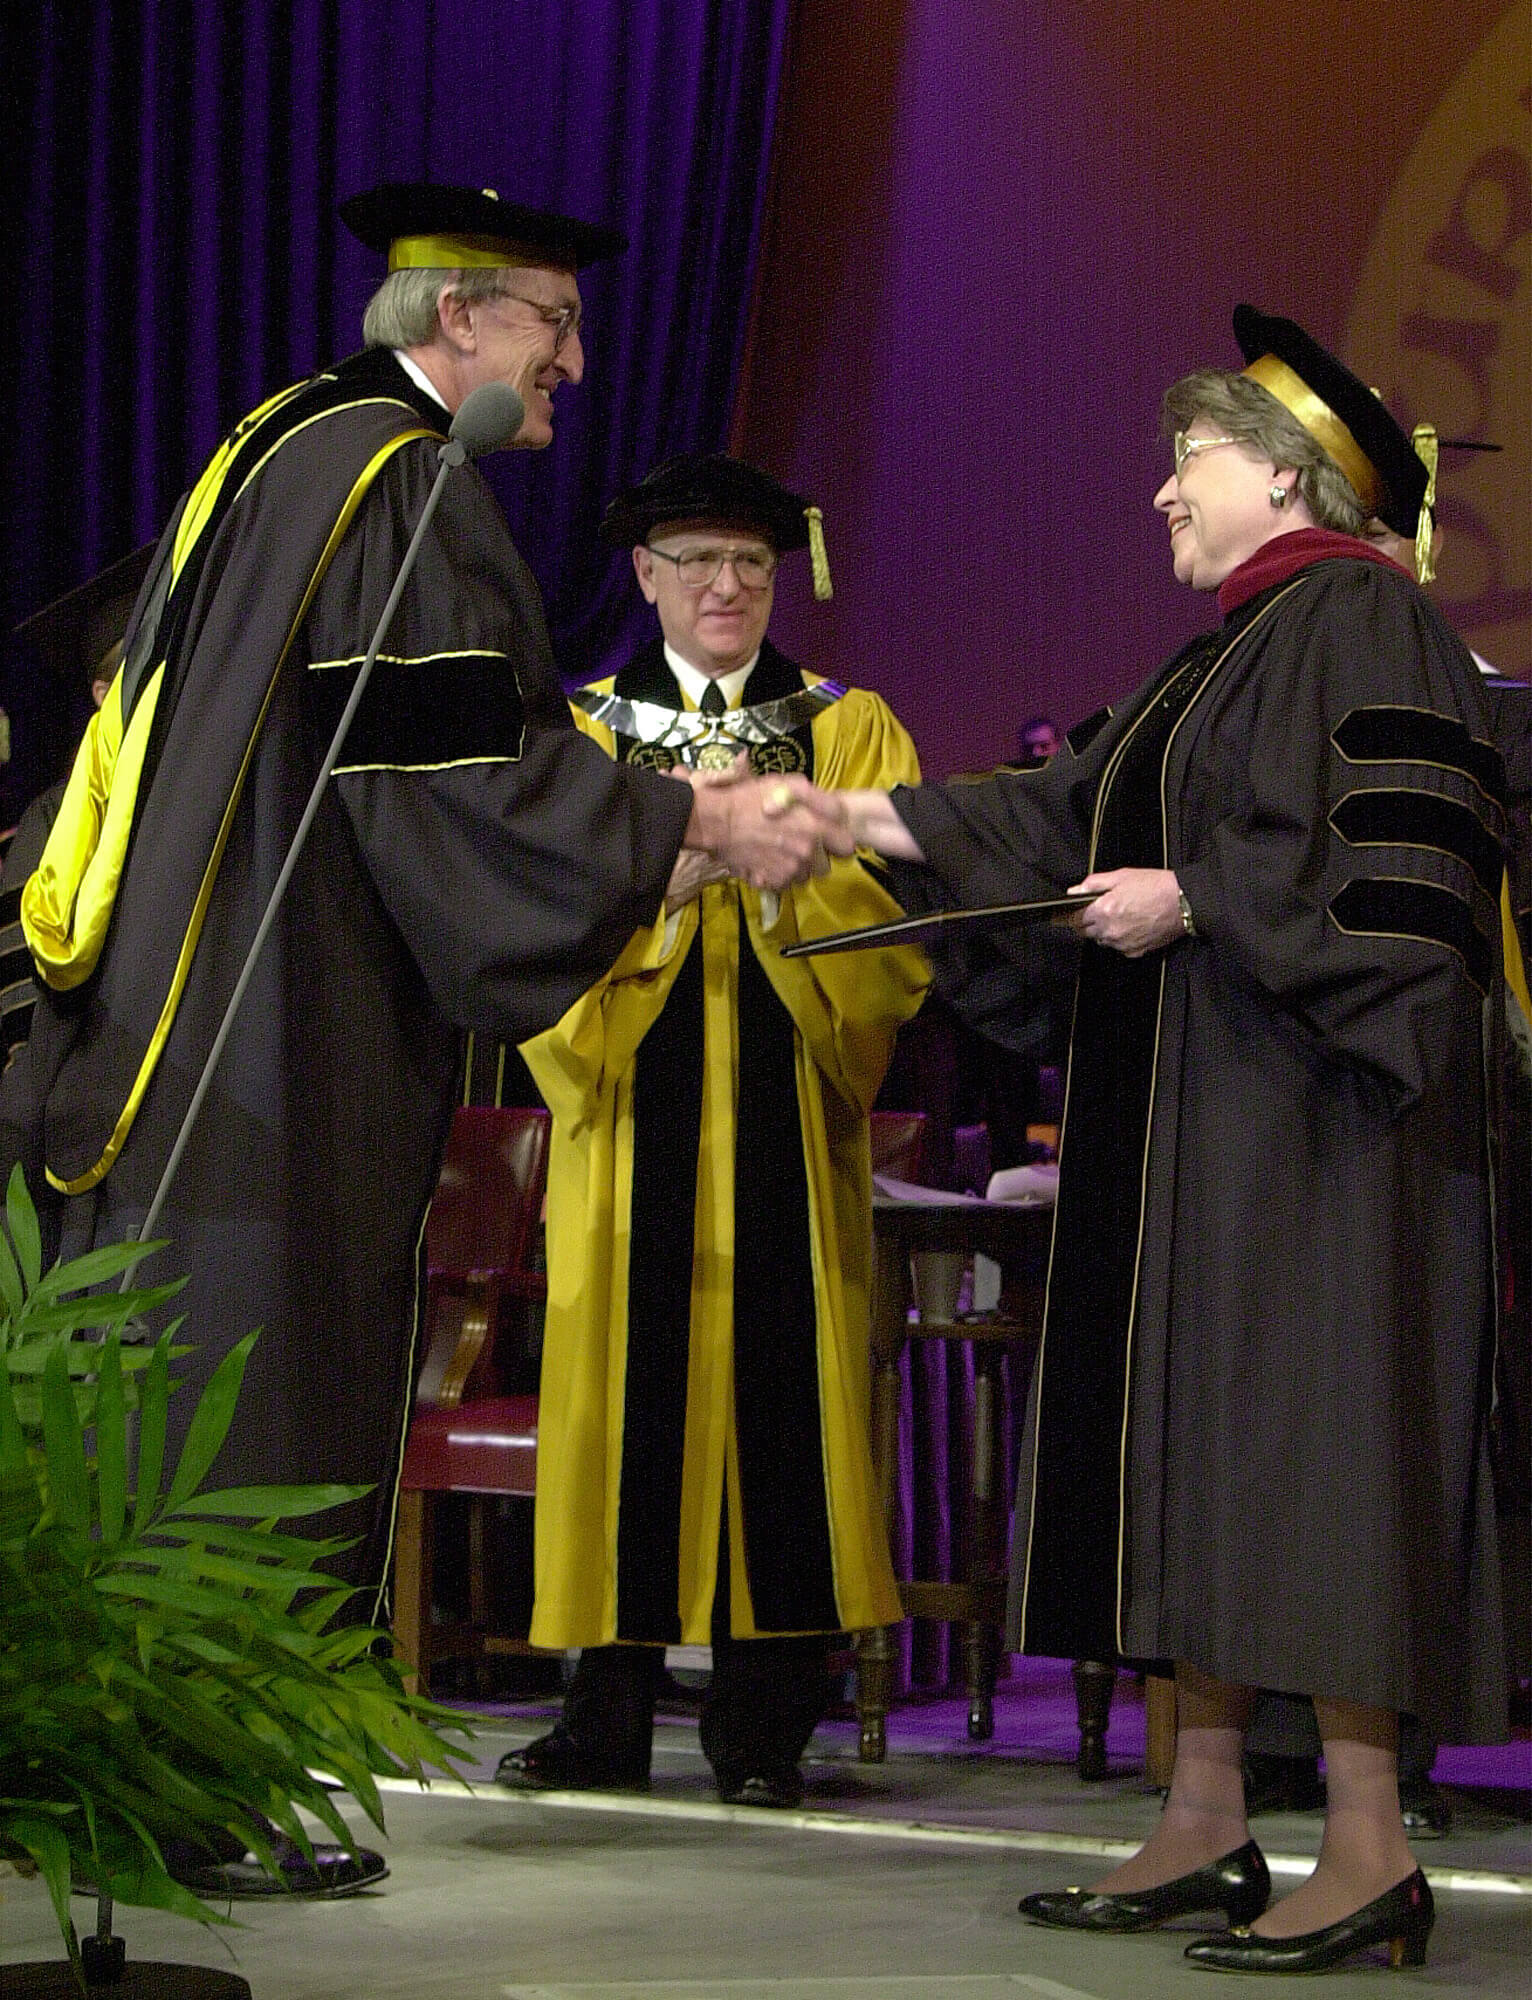 Beerings honorary doctorate